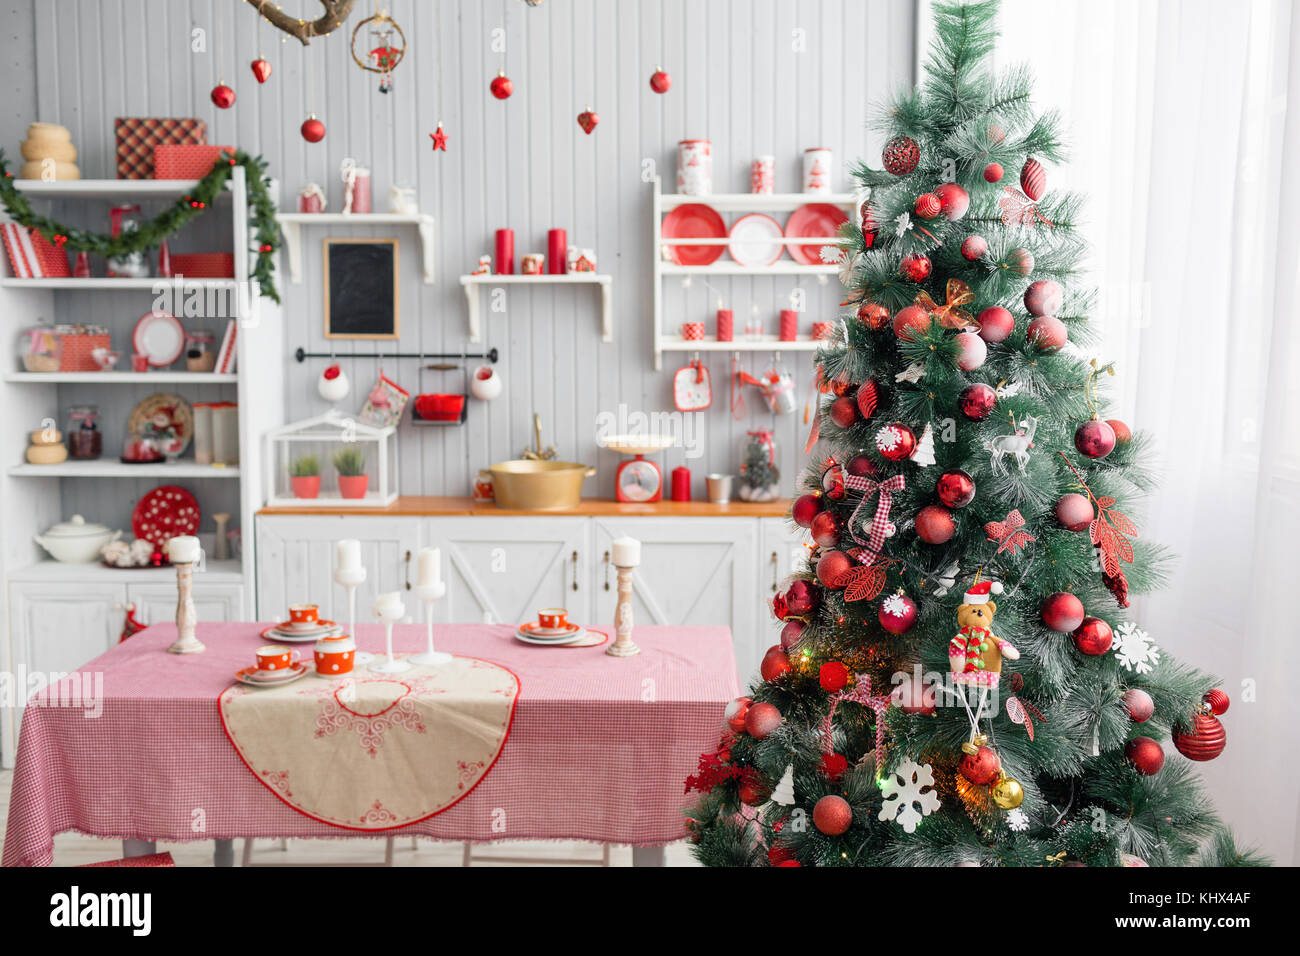 Interior light grey kitchen and red christmas decor. Preparing lunch ...